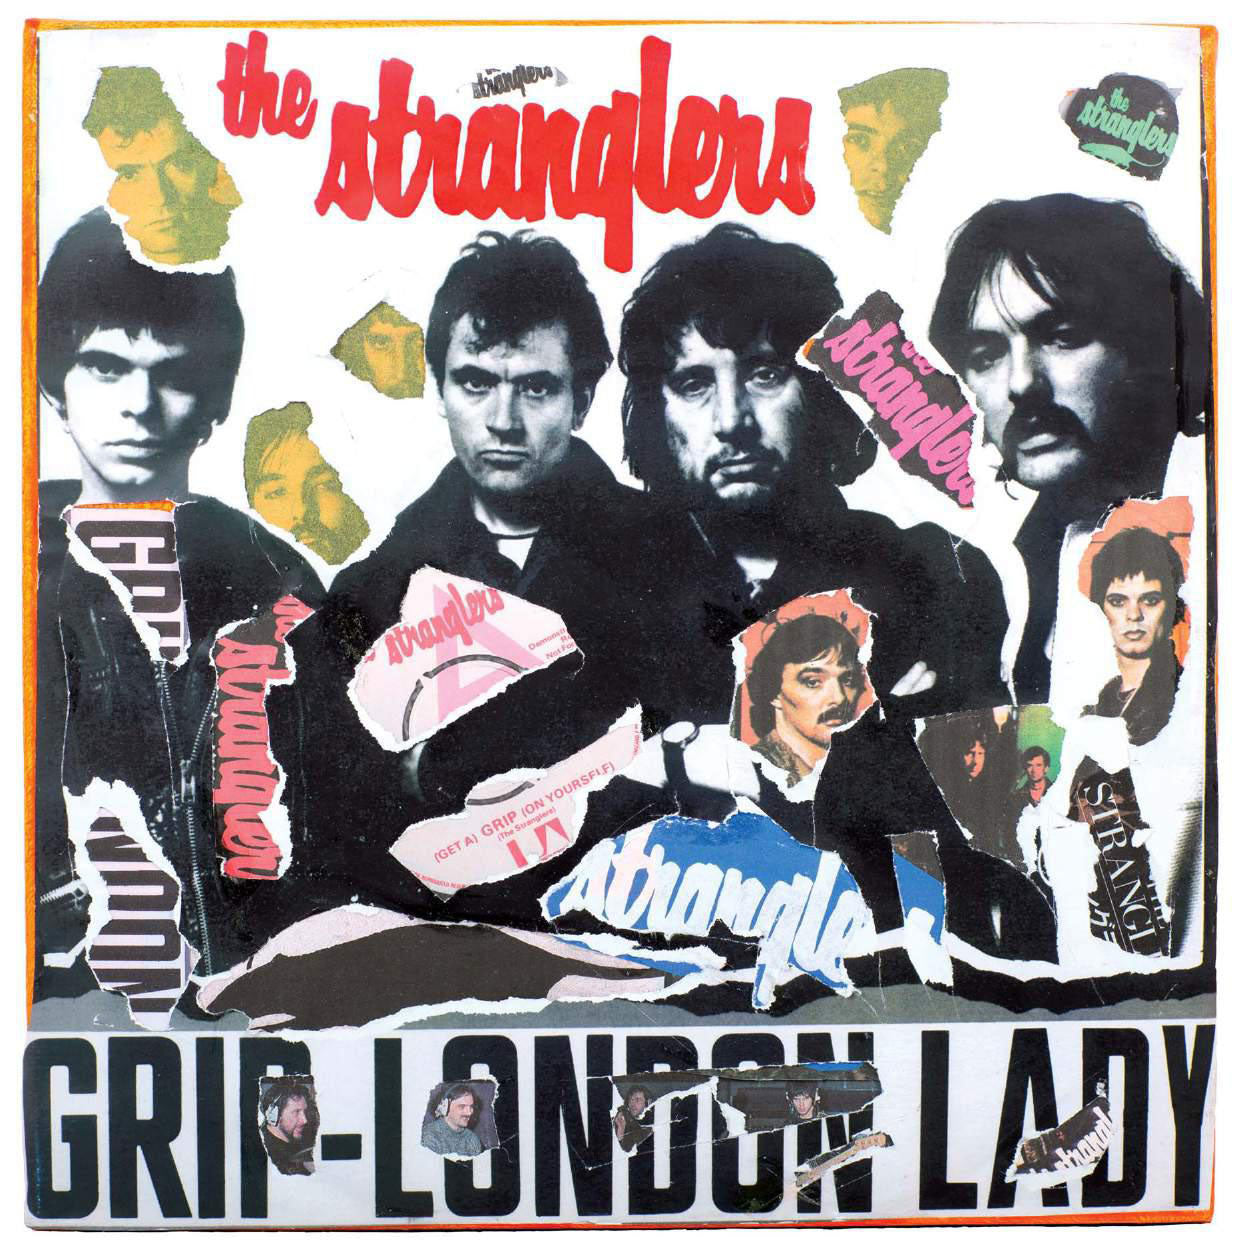 The Stranglers - Grip/ London Lady Decollage